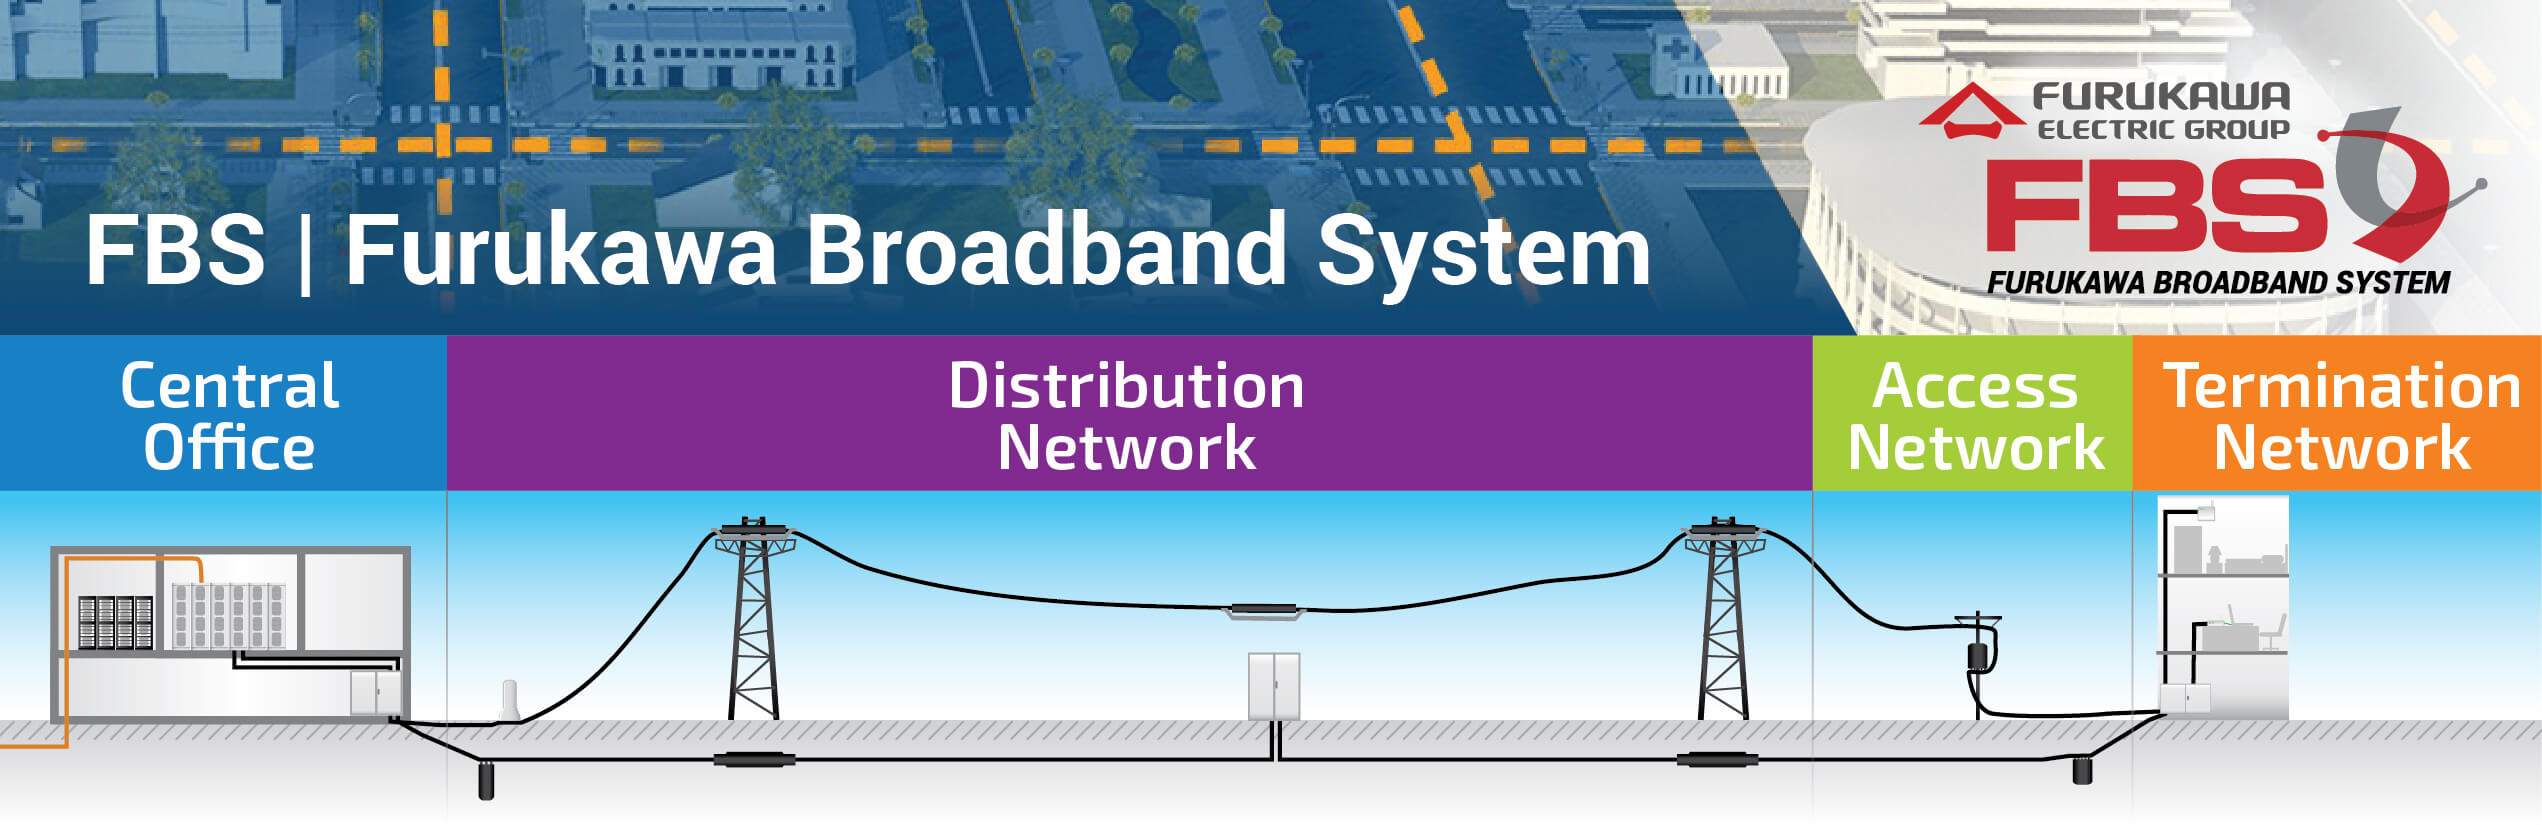 Furukawa Broadband System - Central office Distribution network access termination